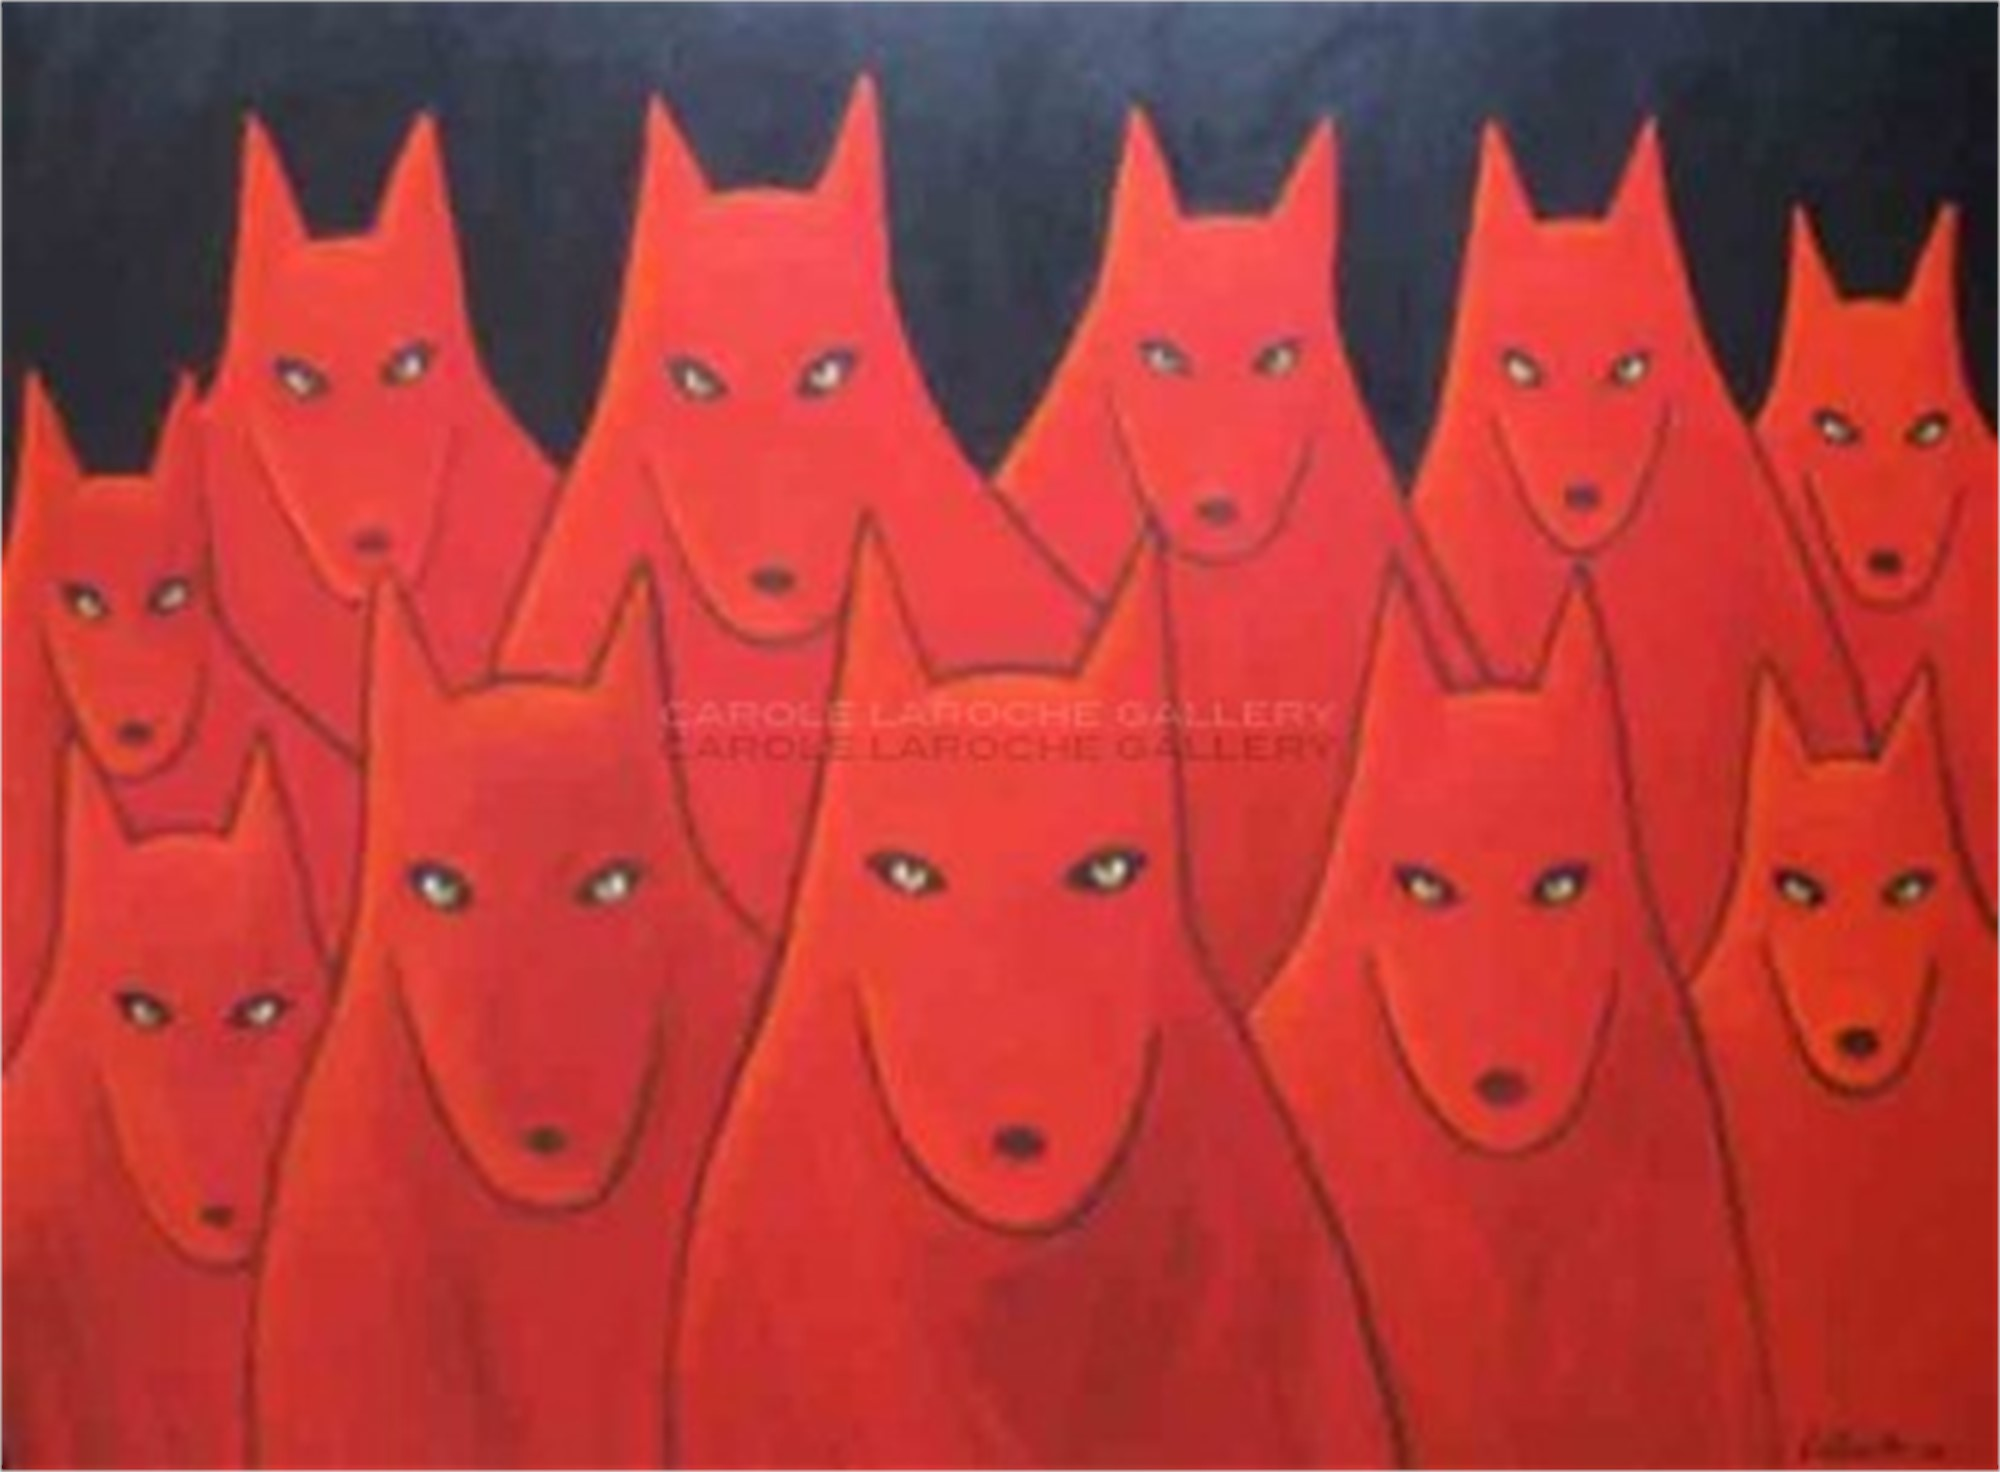 "THE GATHERING giclee on canvas Large 54""x72"" $5000 or Medium 30""x40"" $2200 by Carole LaRoche"